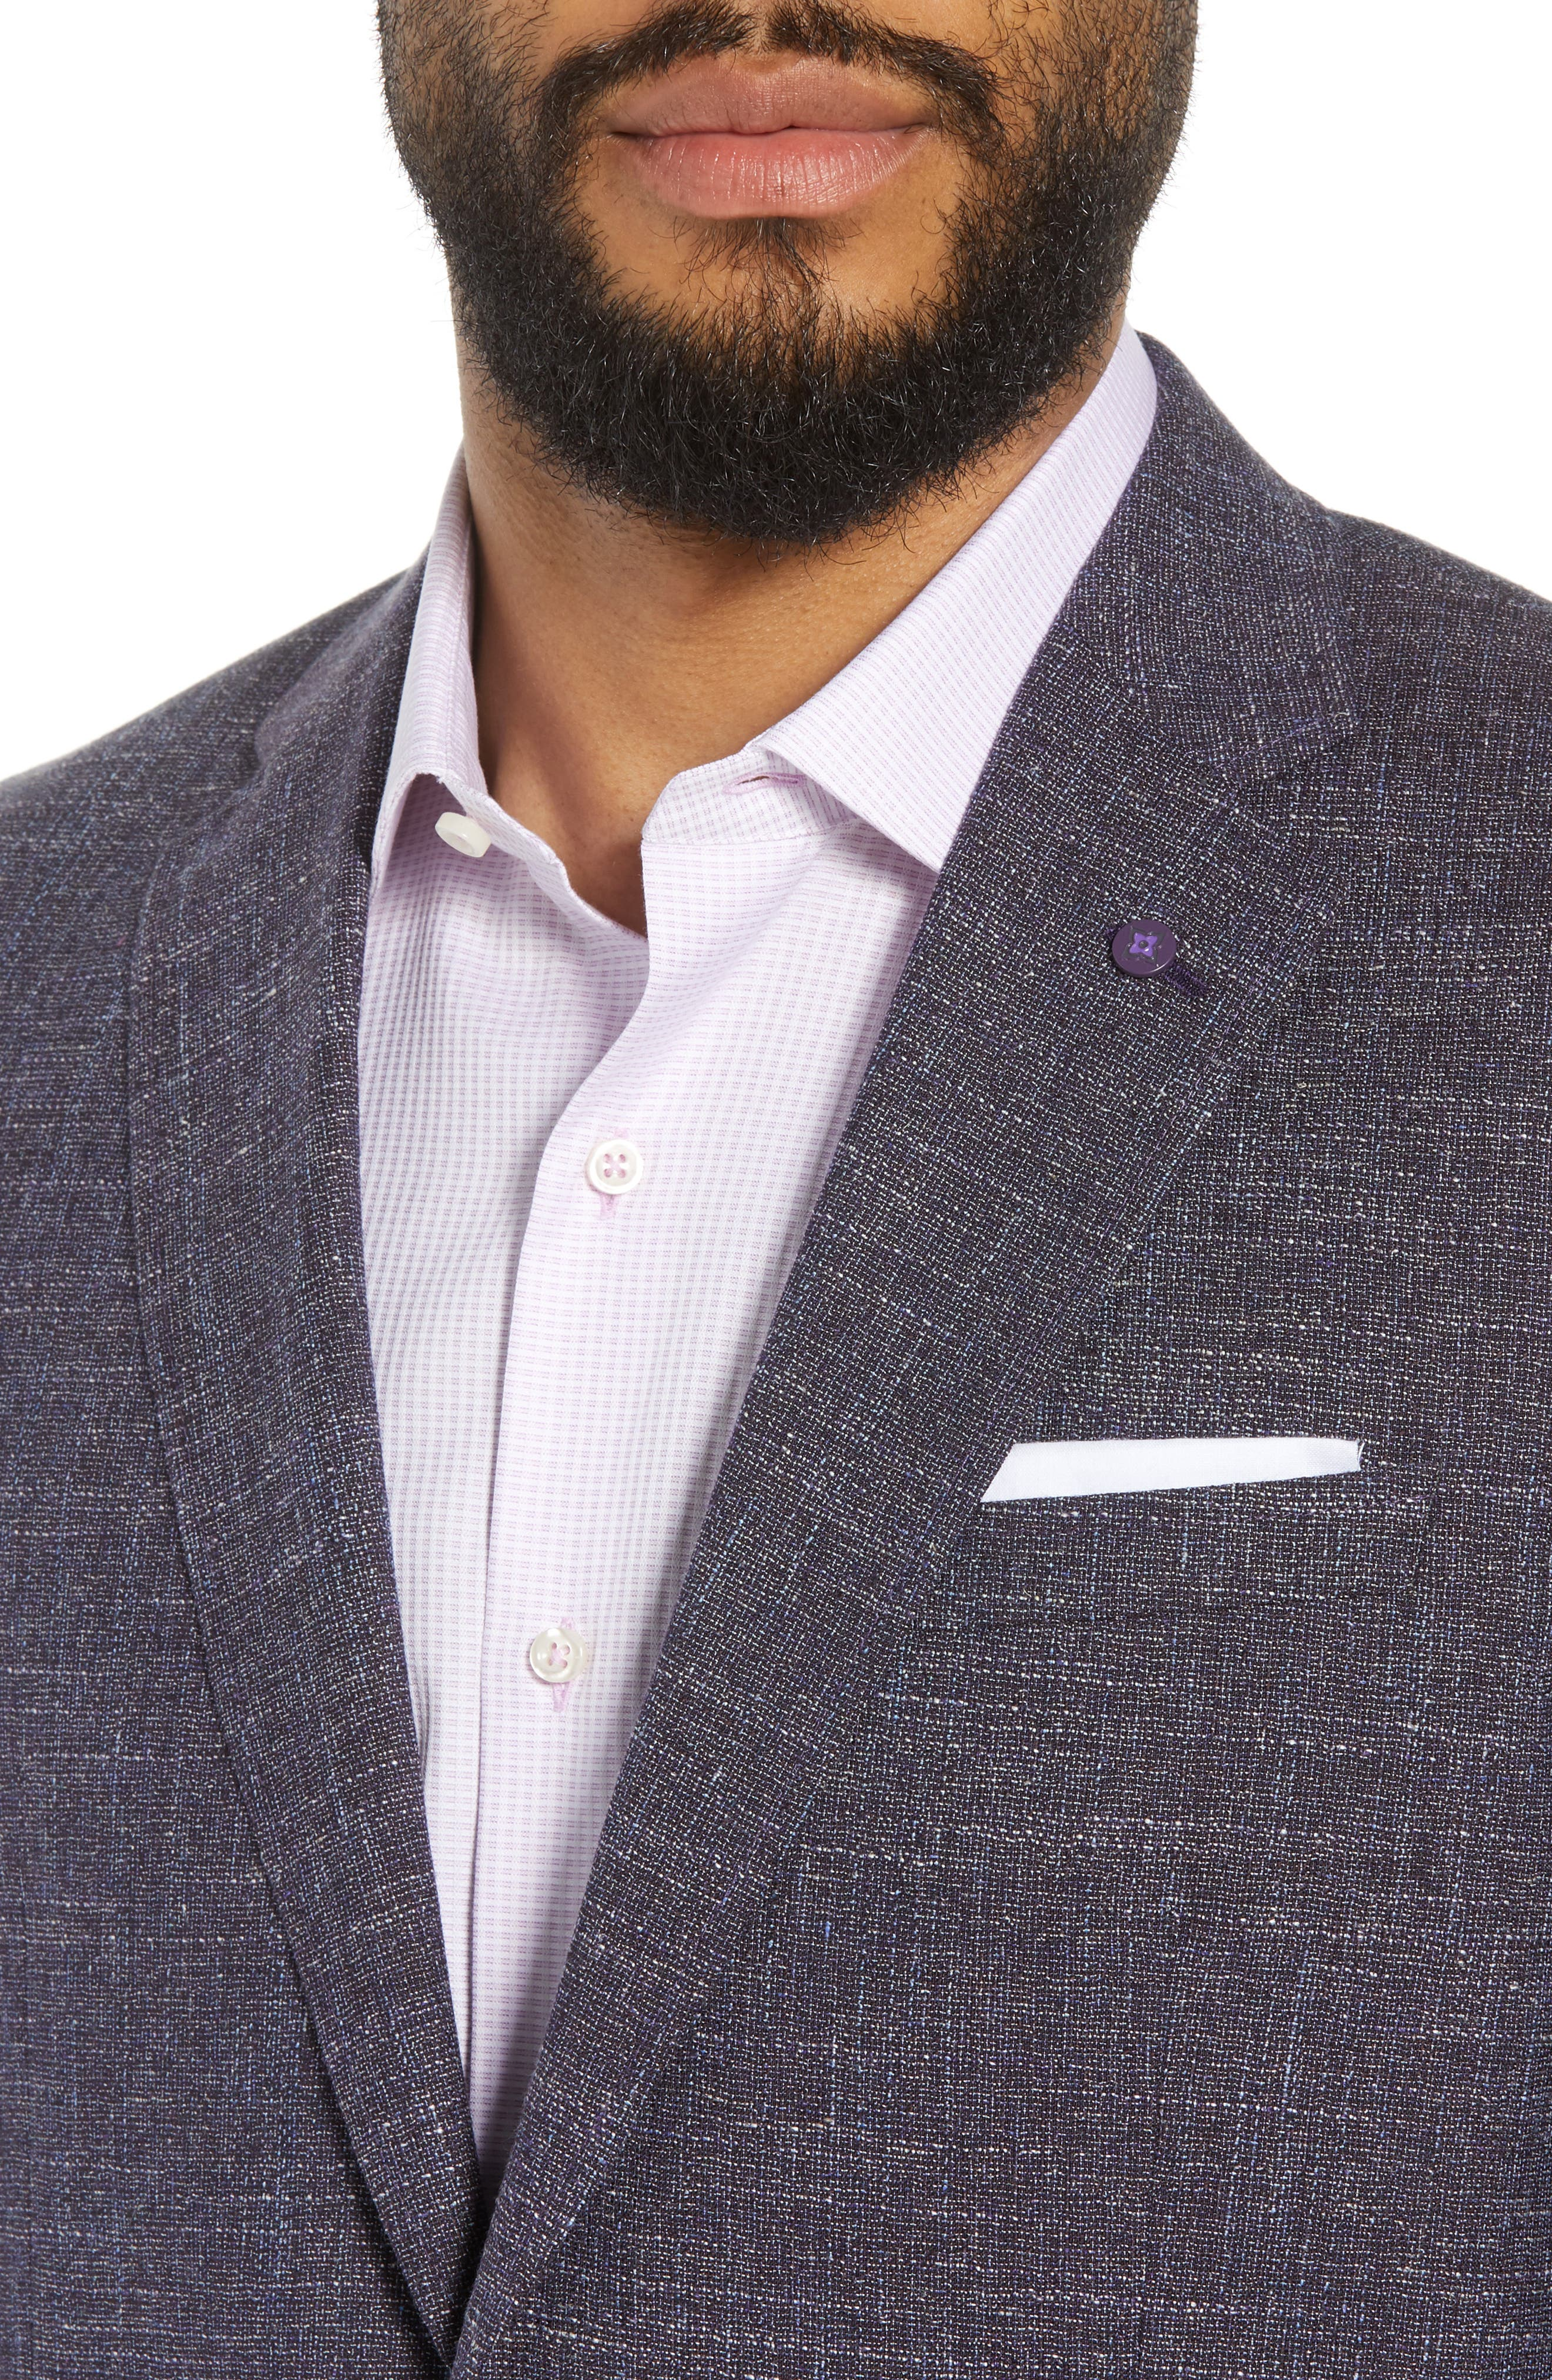 Jay Trim Fit Slubbed Wool, Cotton & Linen Sport Coat,                             Alternate thumbnail 4, color,                             930